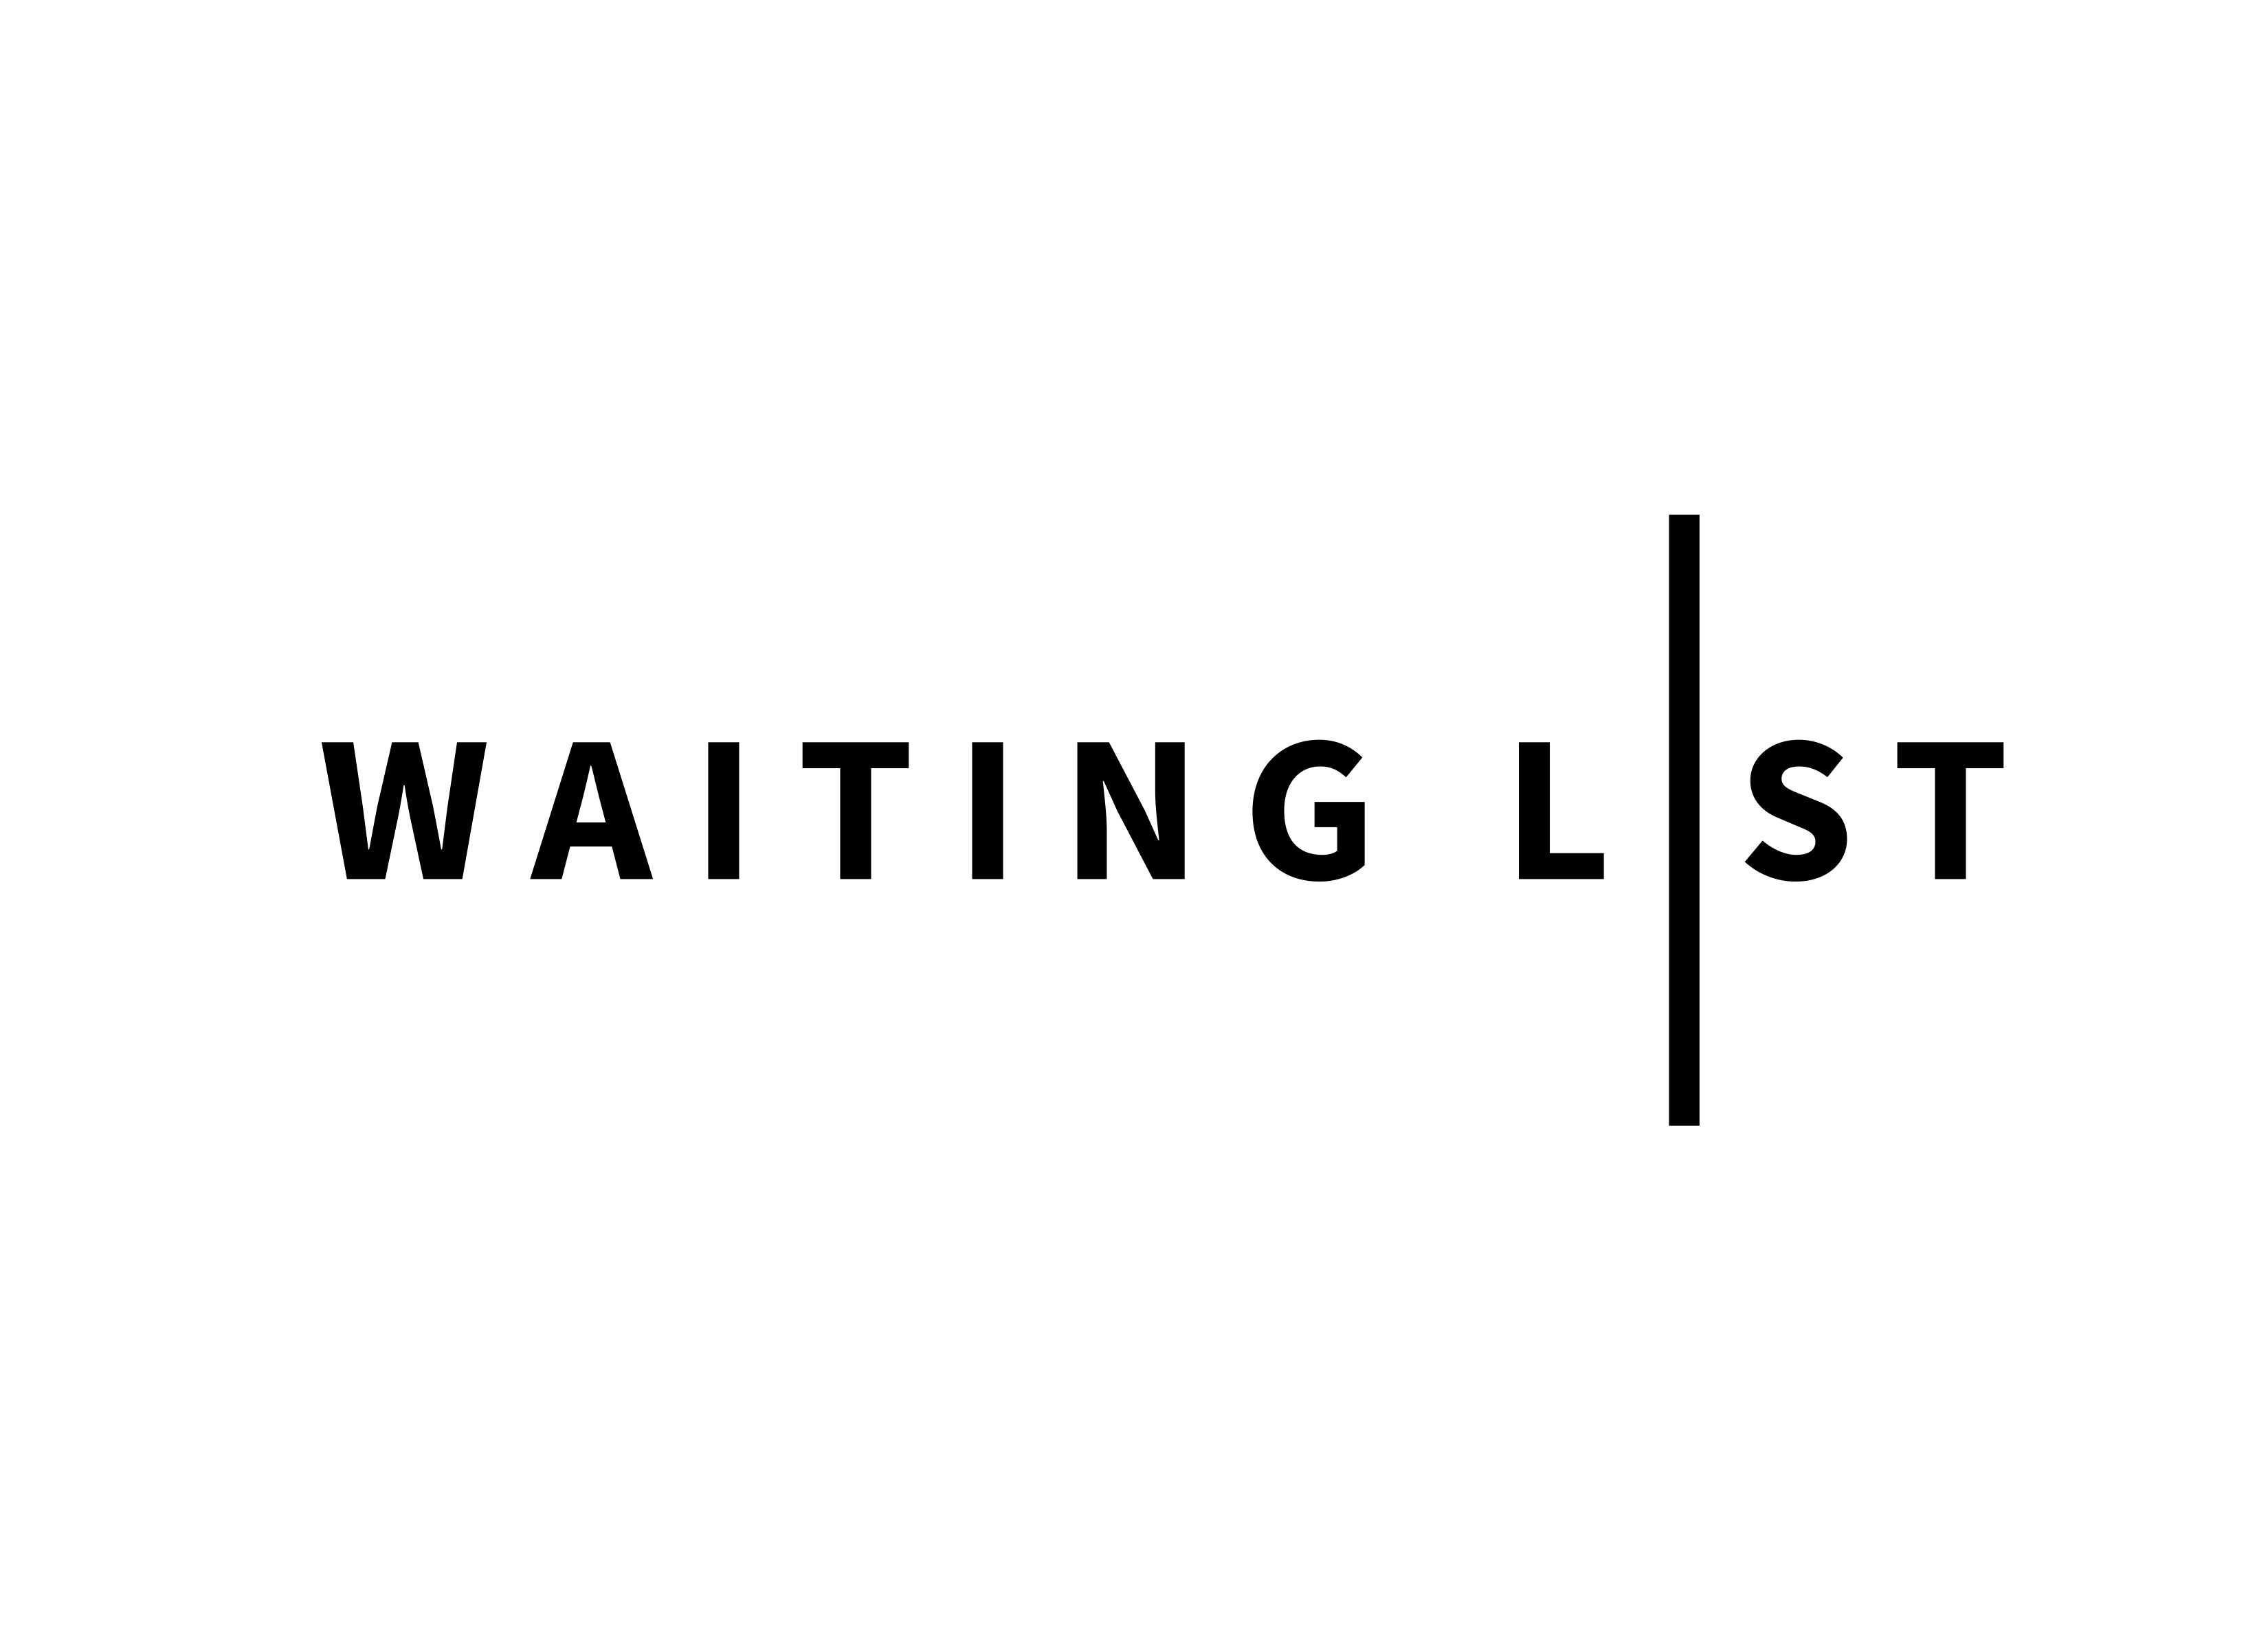 Waiting List Clothing Introduces Unique Clothing Designs With Minimalist Aesthetic and Monochromatic Colors